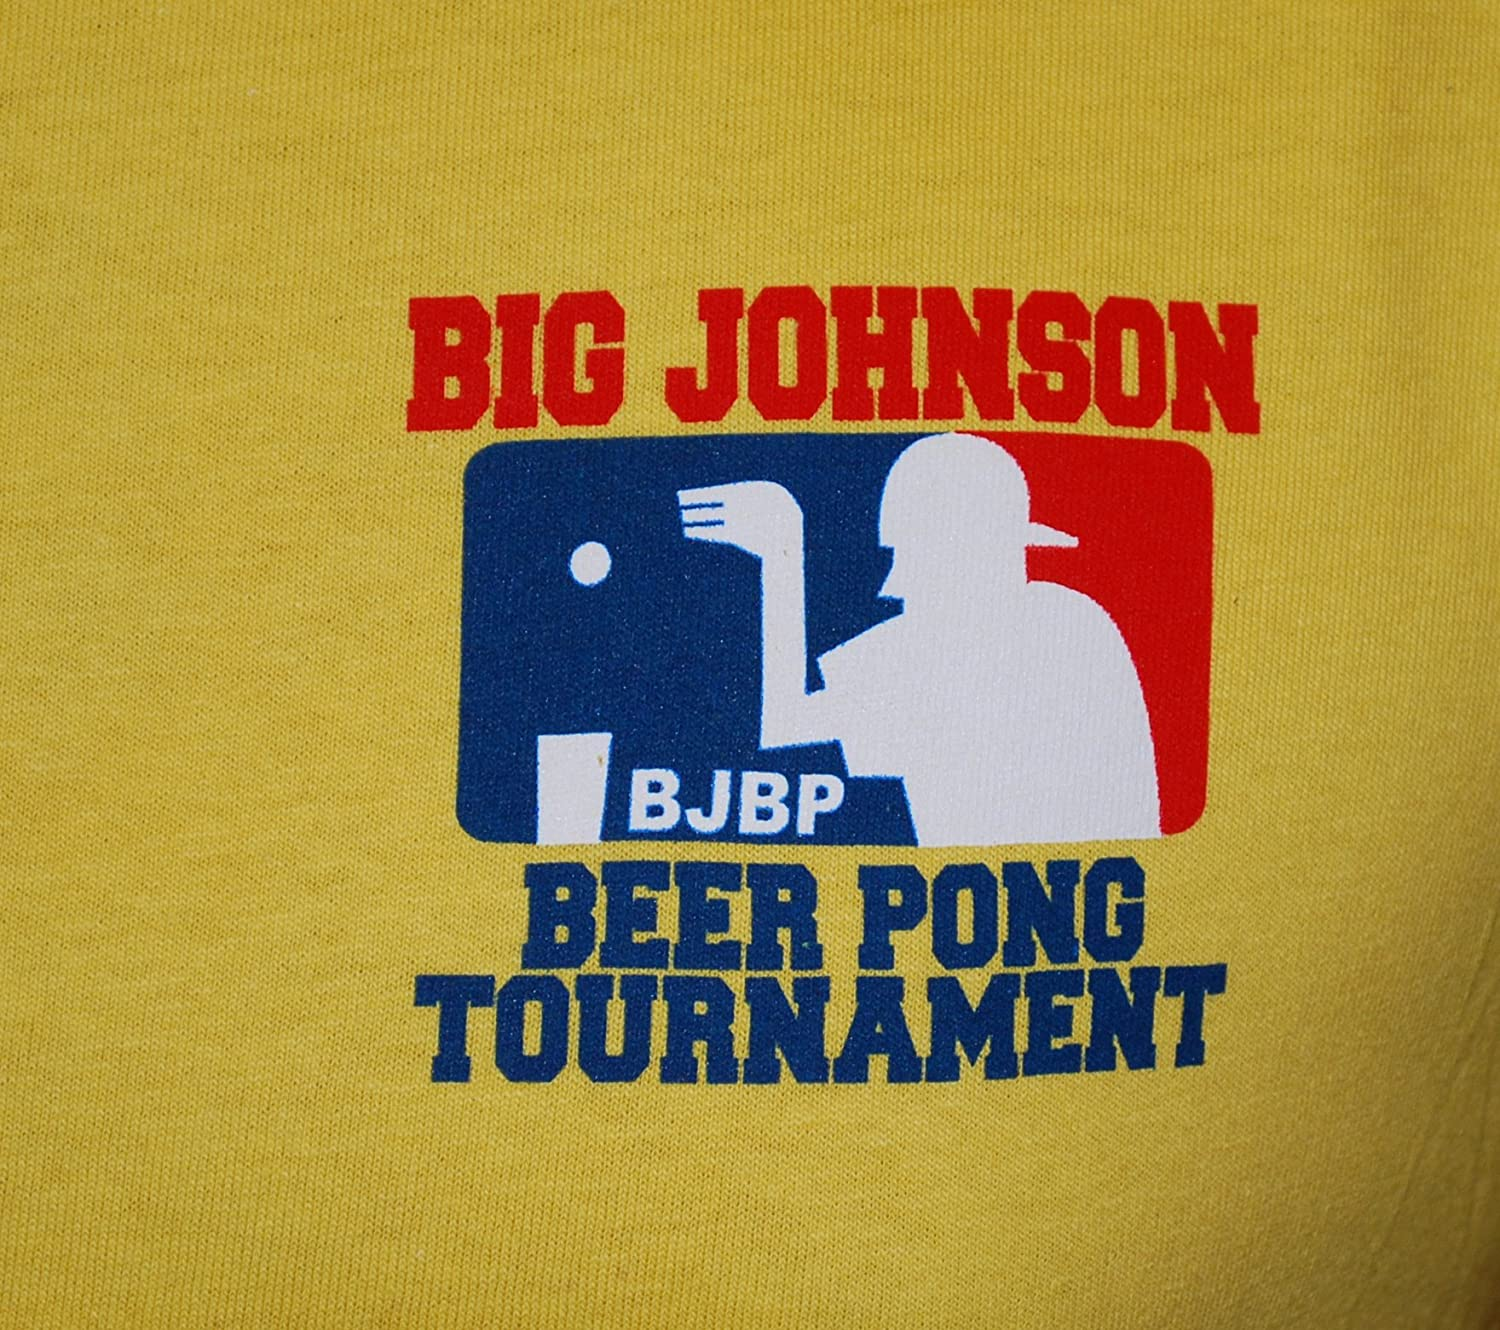 f19dd6653 Amazon.com: Big Johnson - Beer Pong Tournament: Sports & Outdoors